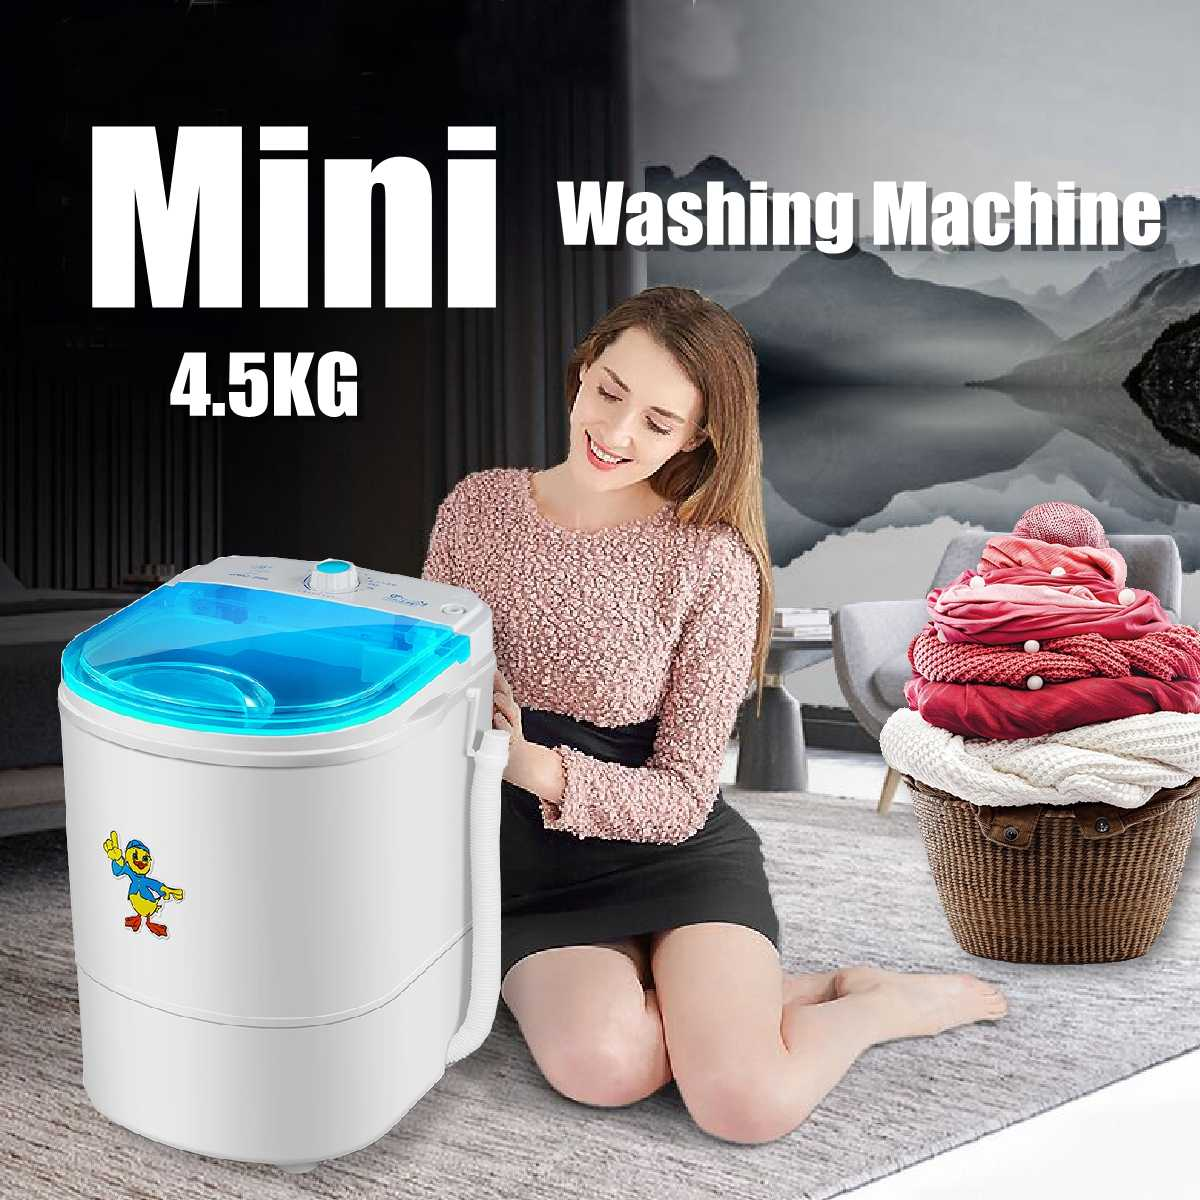 225W 9.9 lb Clothes Portable Mini Washing Machine Spin Compact Washer Low Noise for Home Dorm machine single-barrel washer image